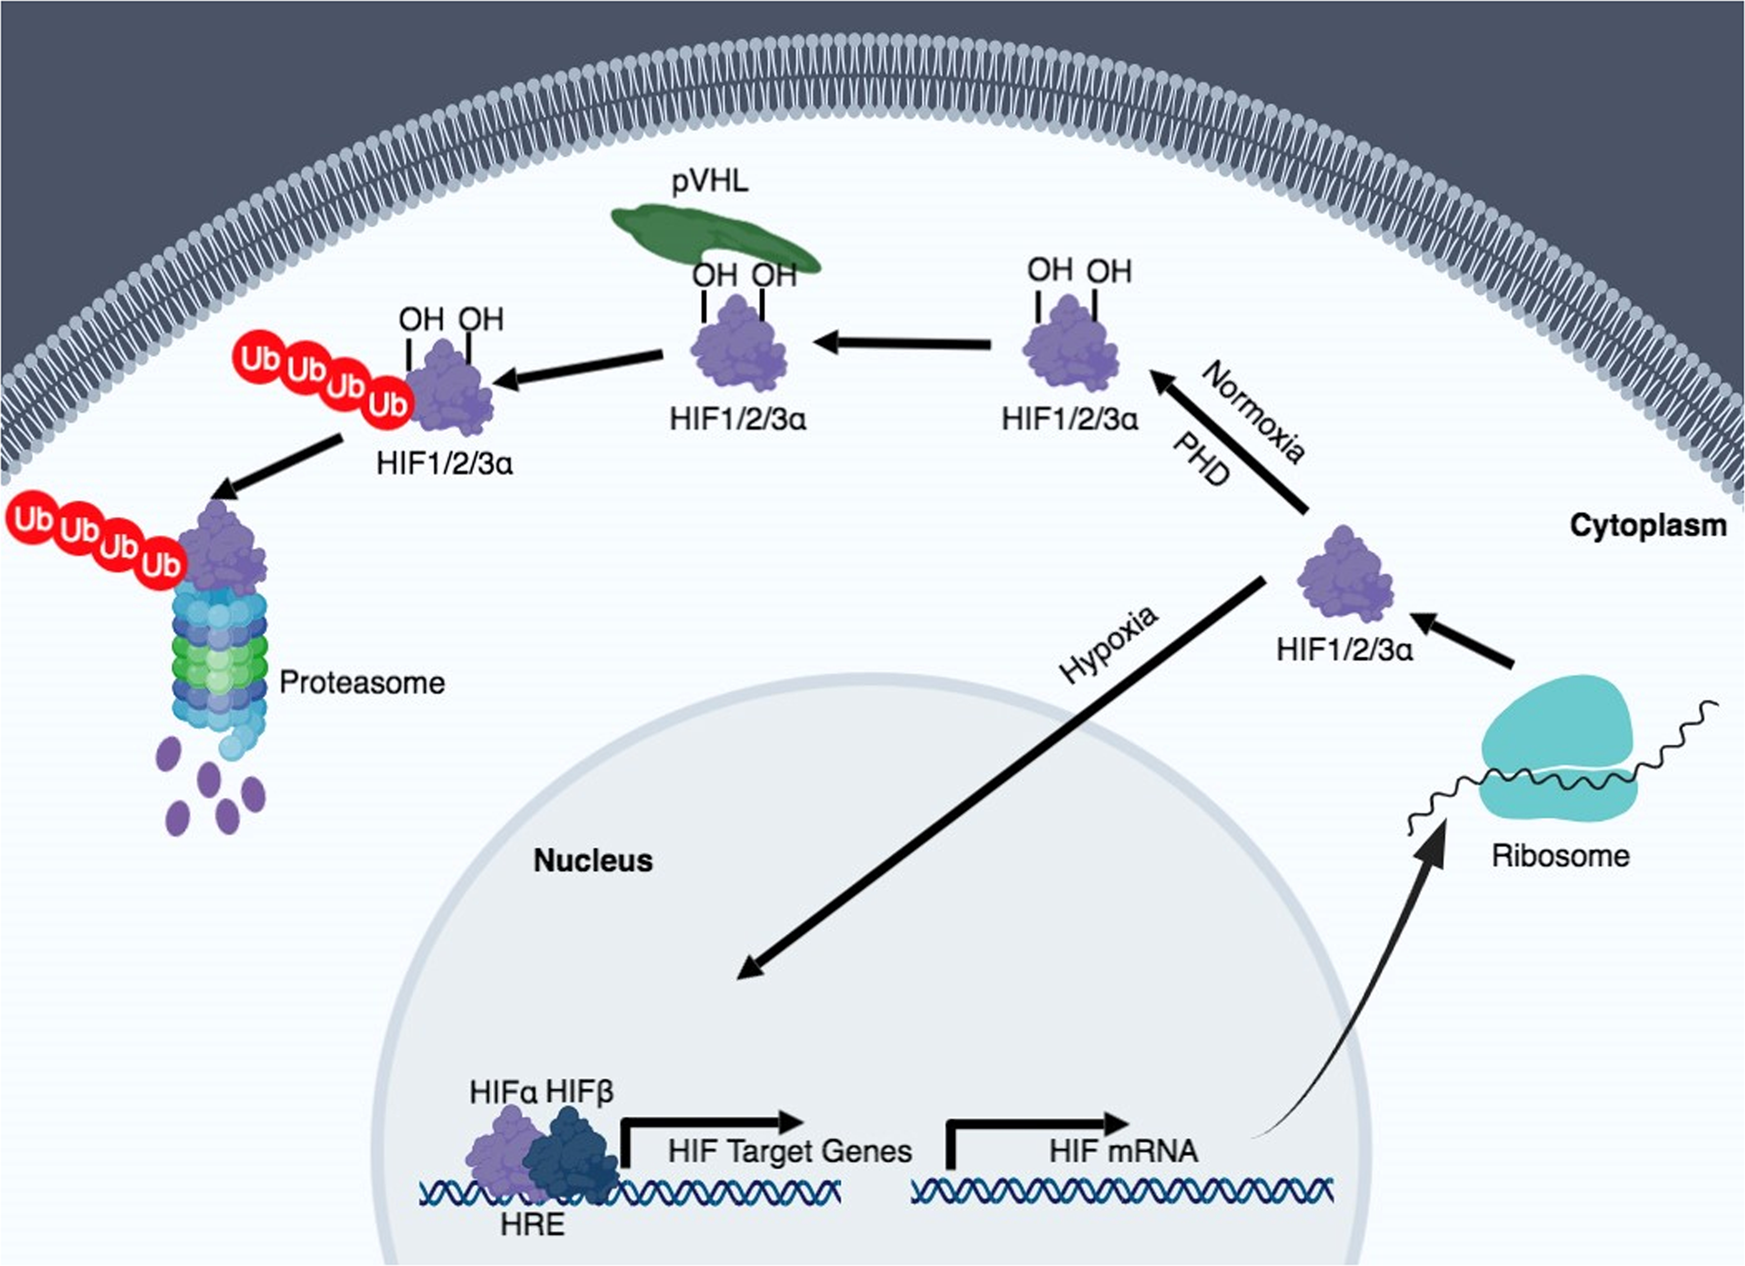 Hypoxia signaling in human diseases and therapeutic targets